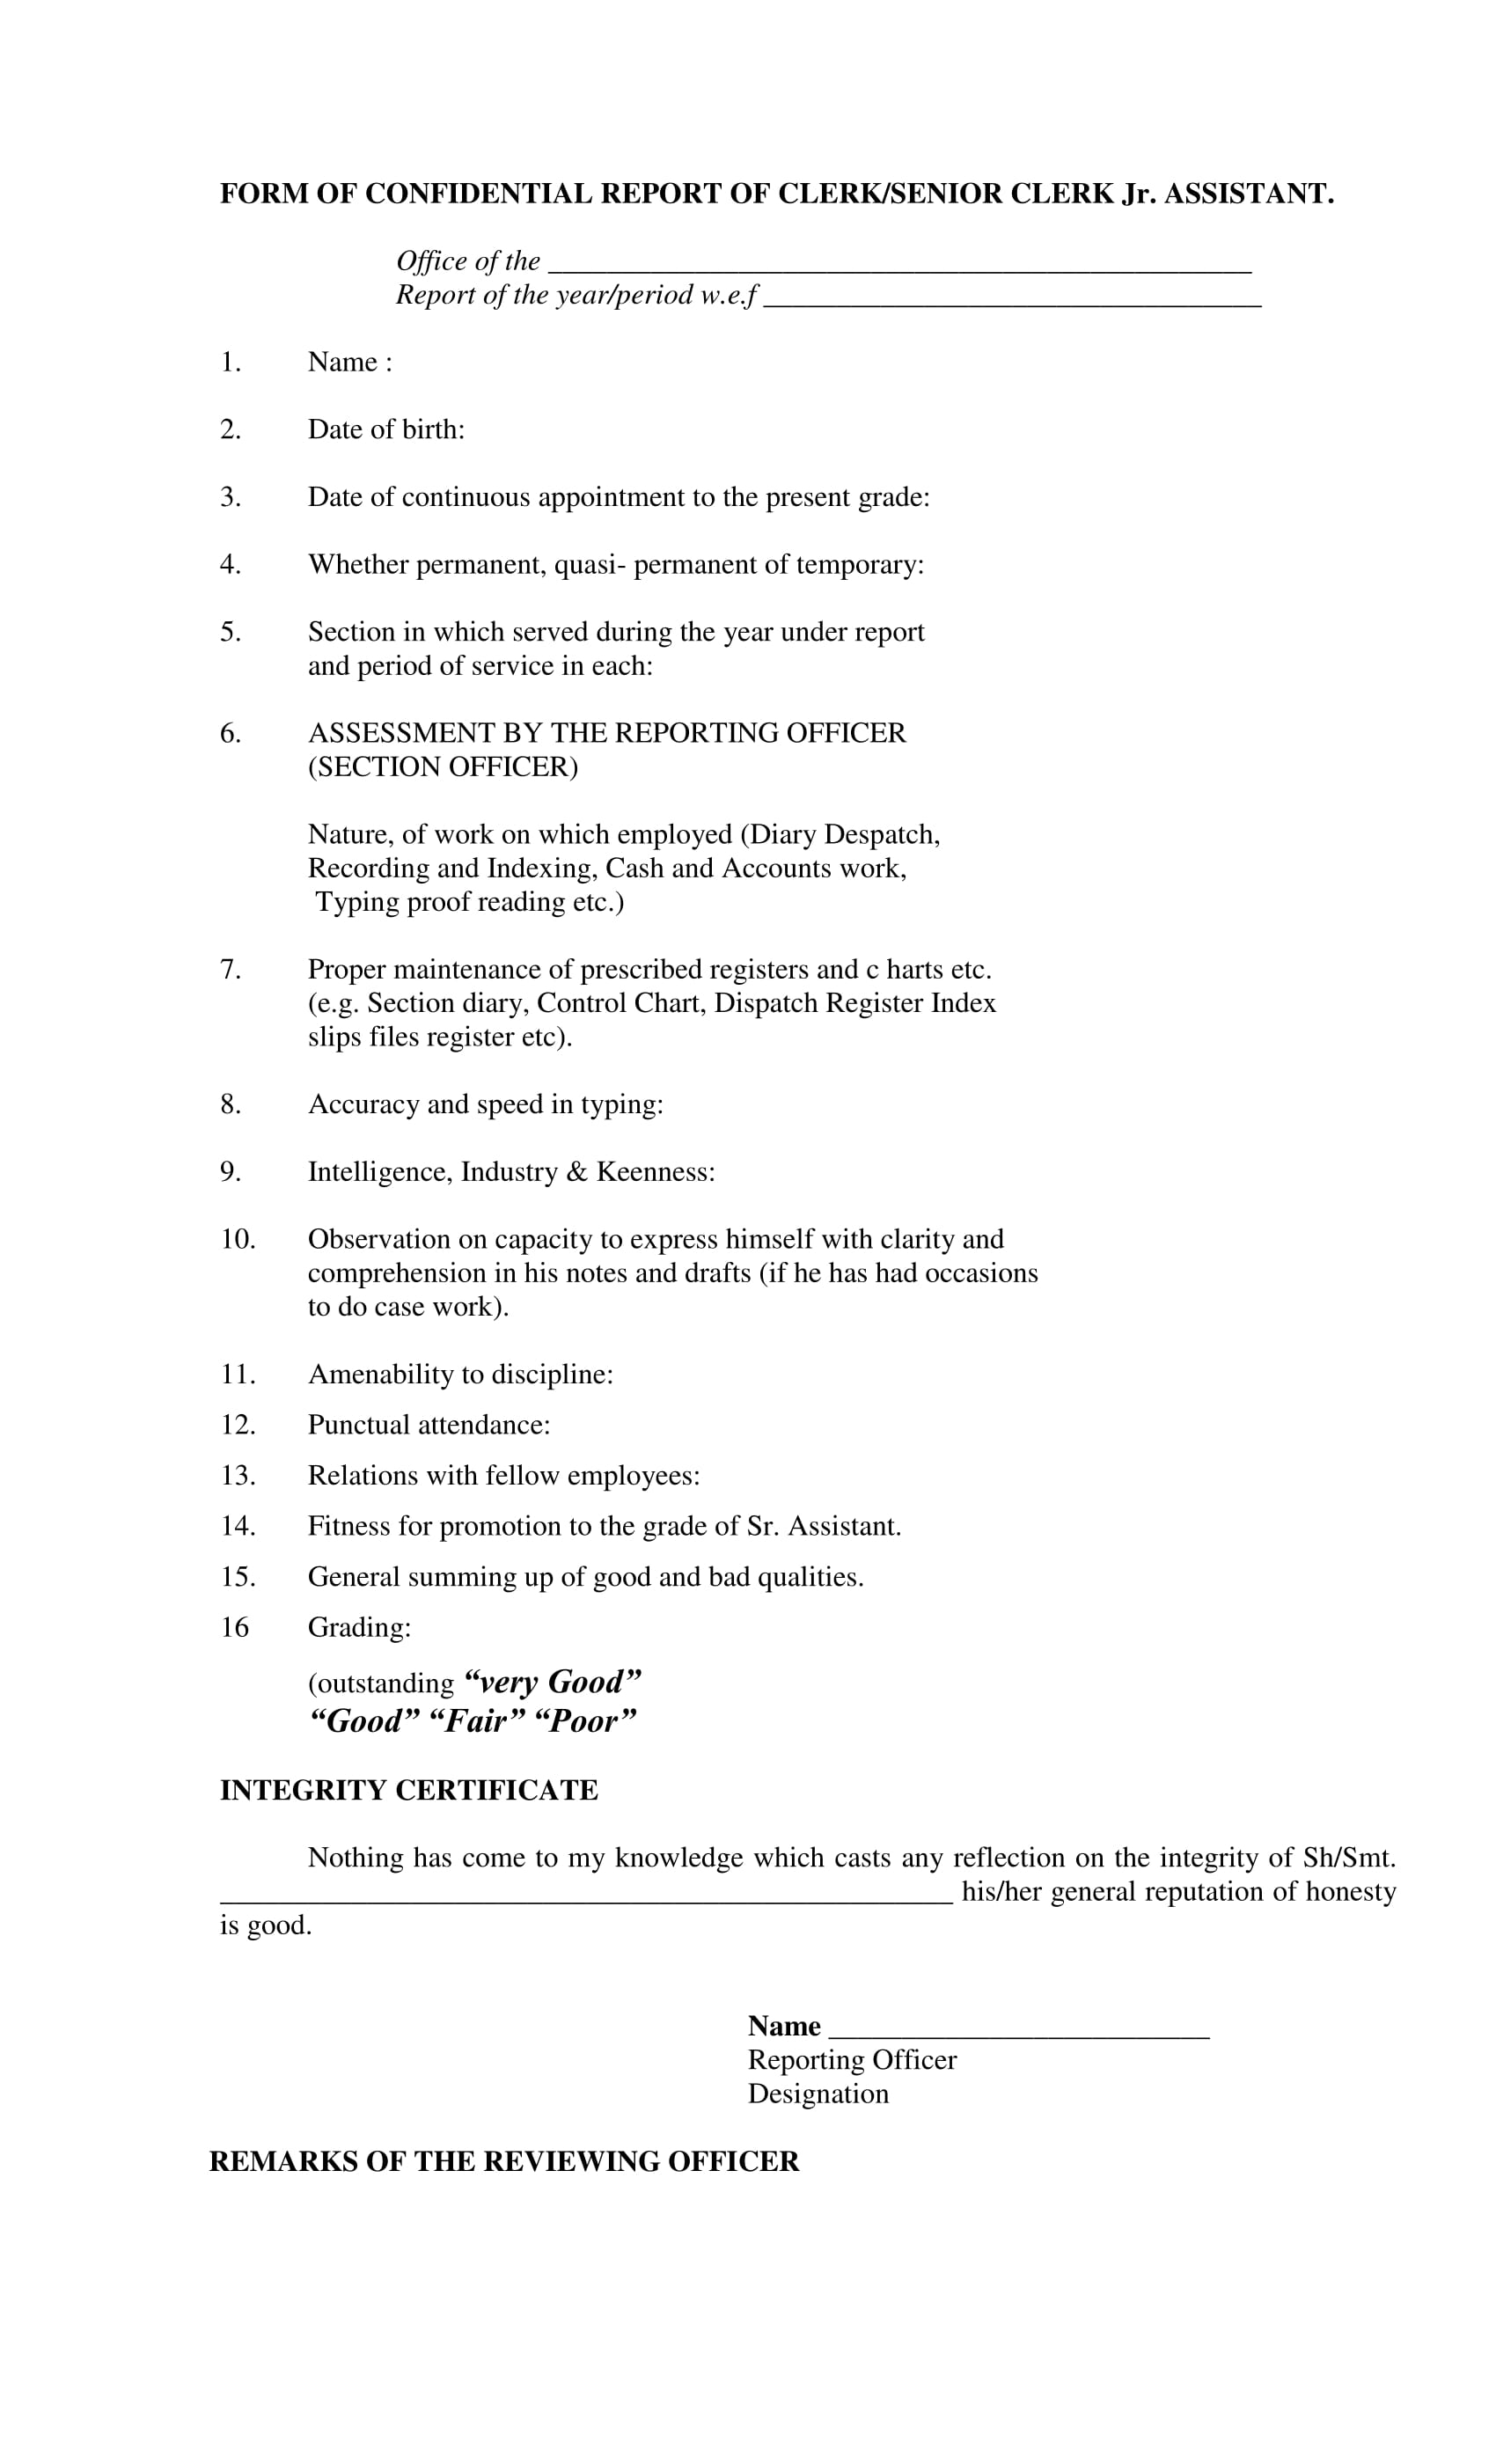 sample form of confidential report 01